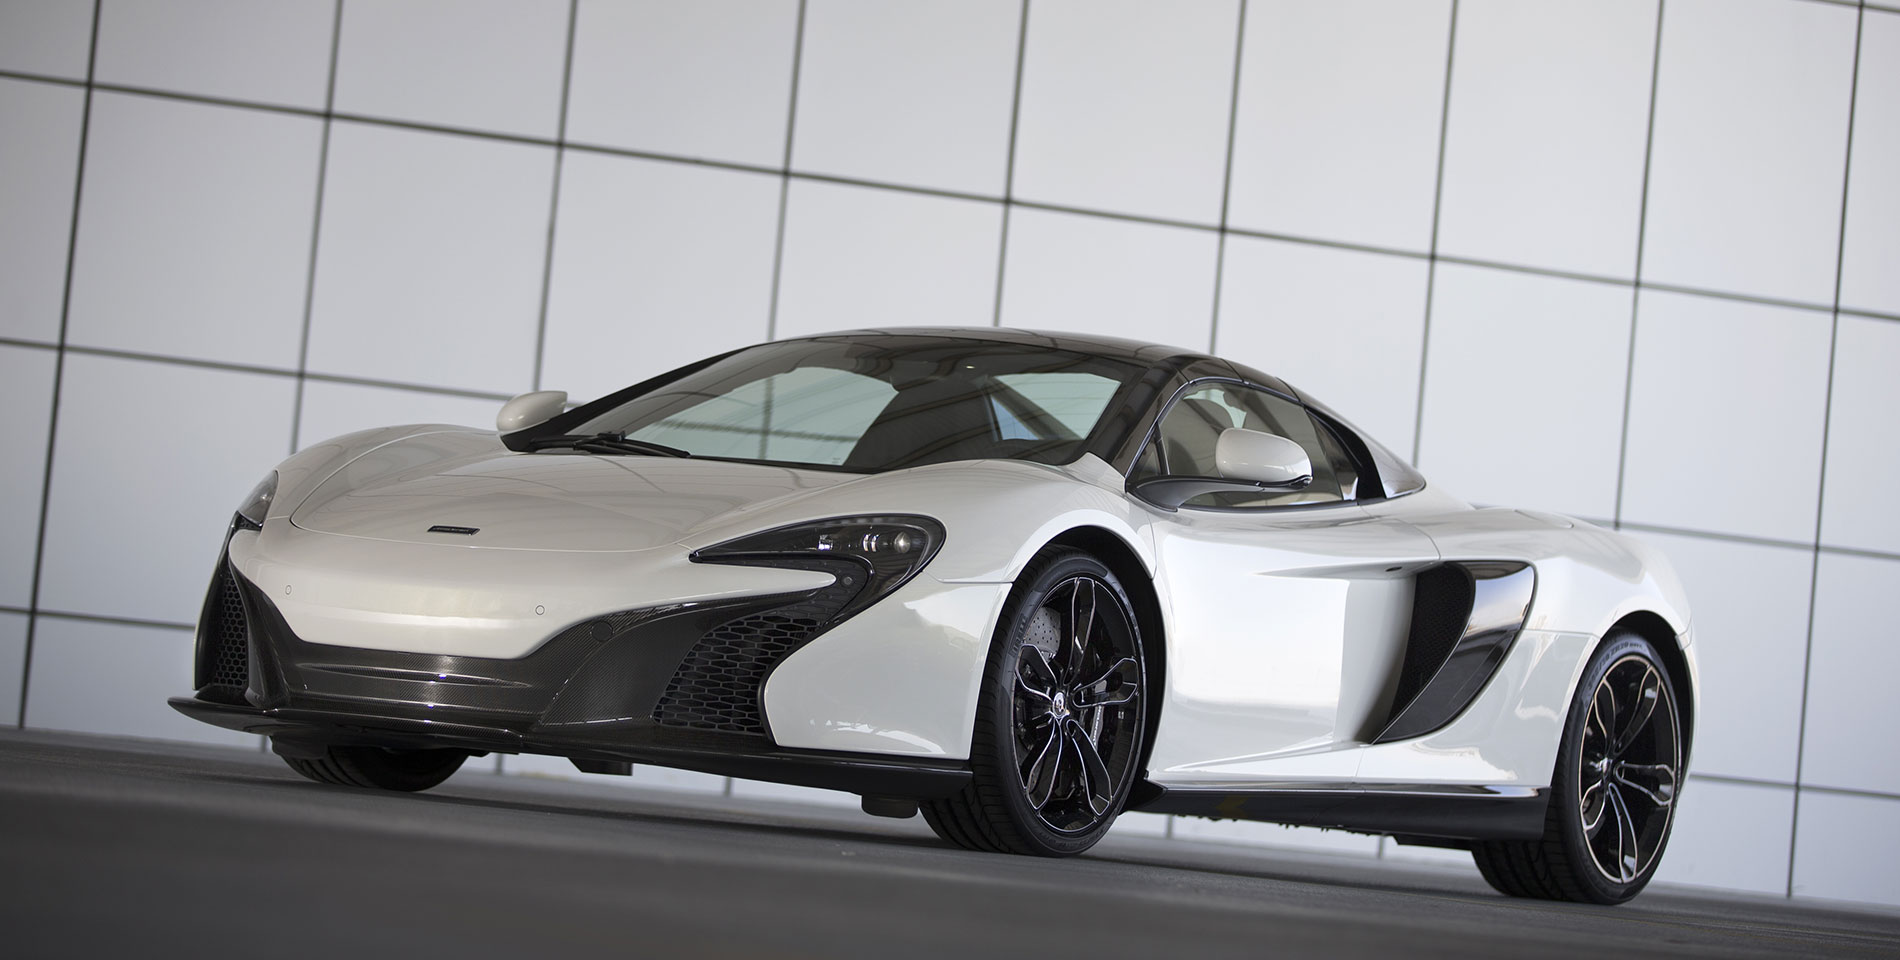 McLaren 650s coupe front side view